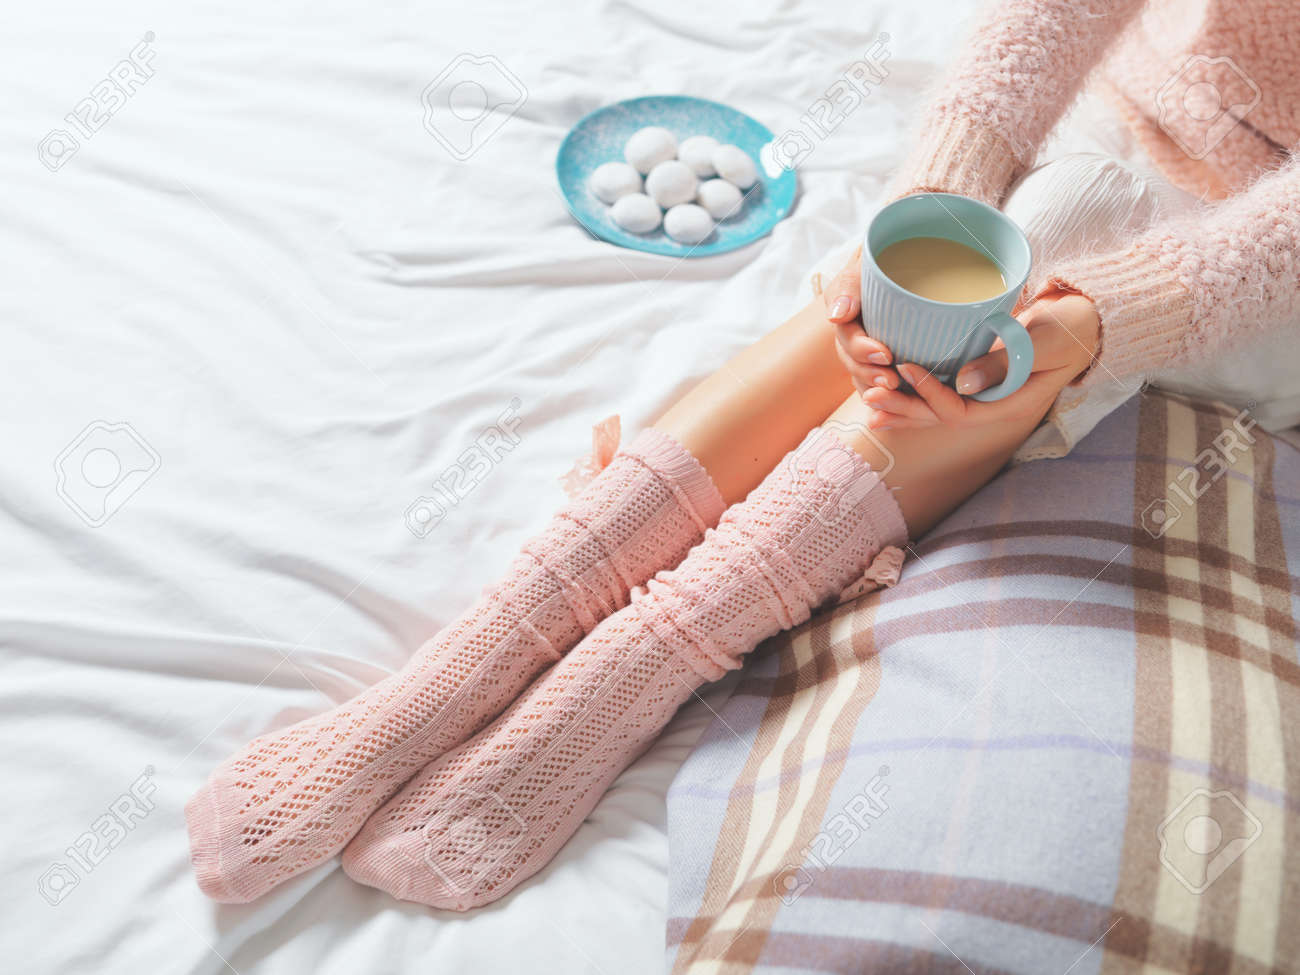 Woman relaxing at cozy home atmosphere on the bed. Young woman with cup of coffee or cocoa in hands and cookies enjoying comfort. Soft light and comfy lifestyle concept. - 41581627